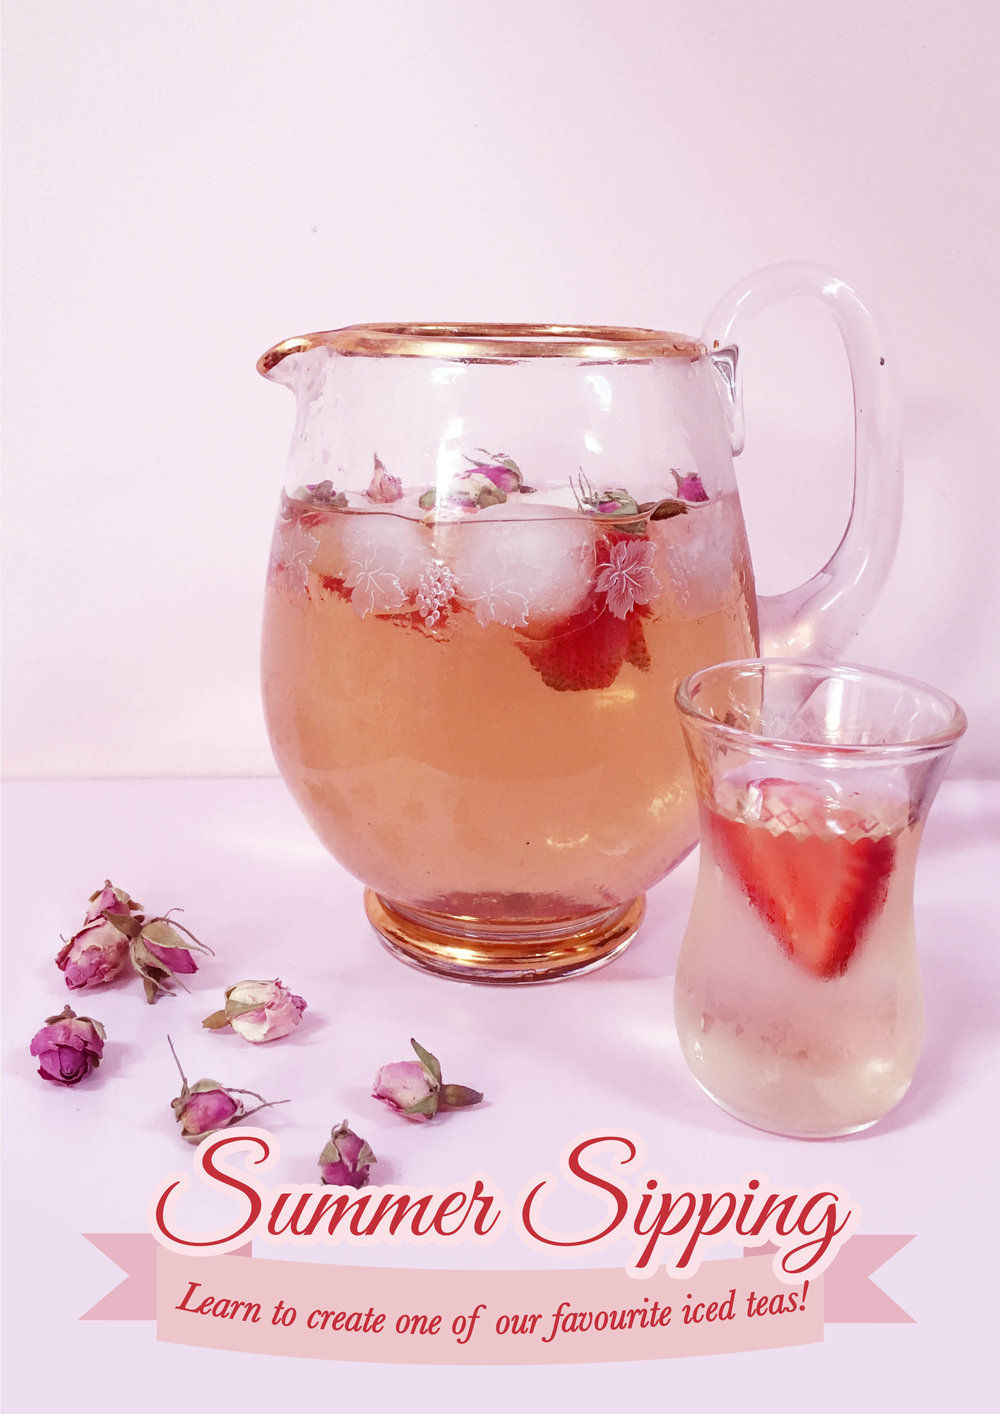 Summer-Sipping-Banner.jpg